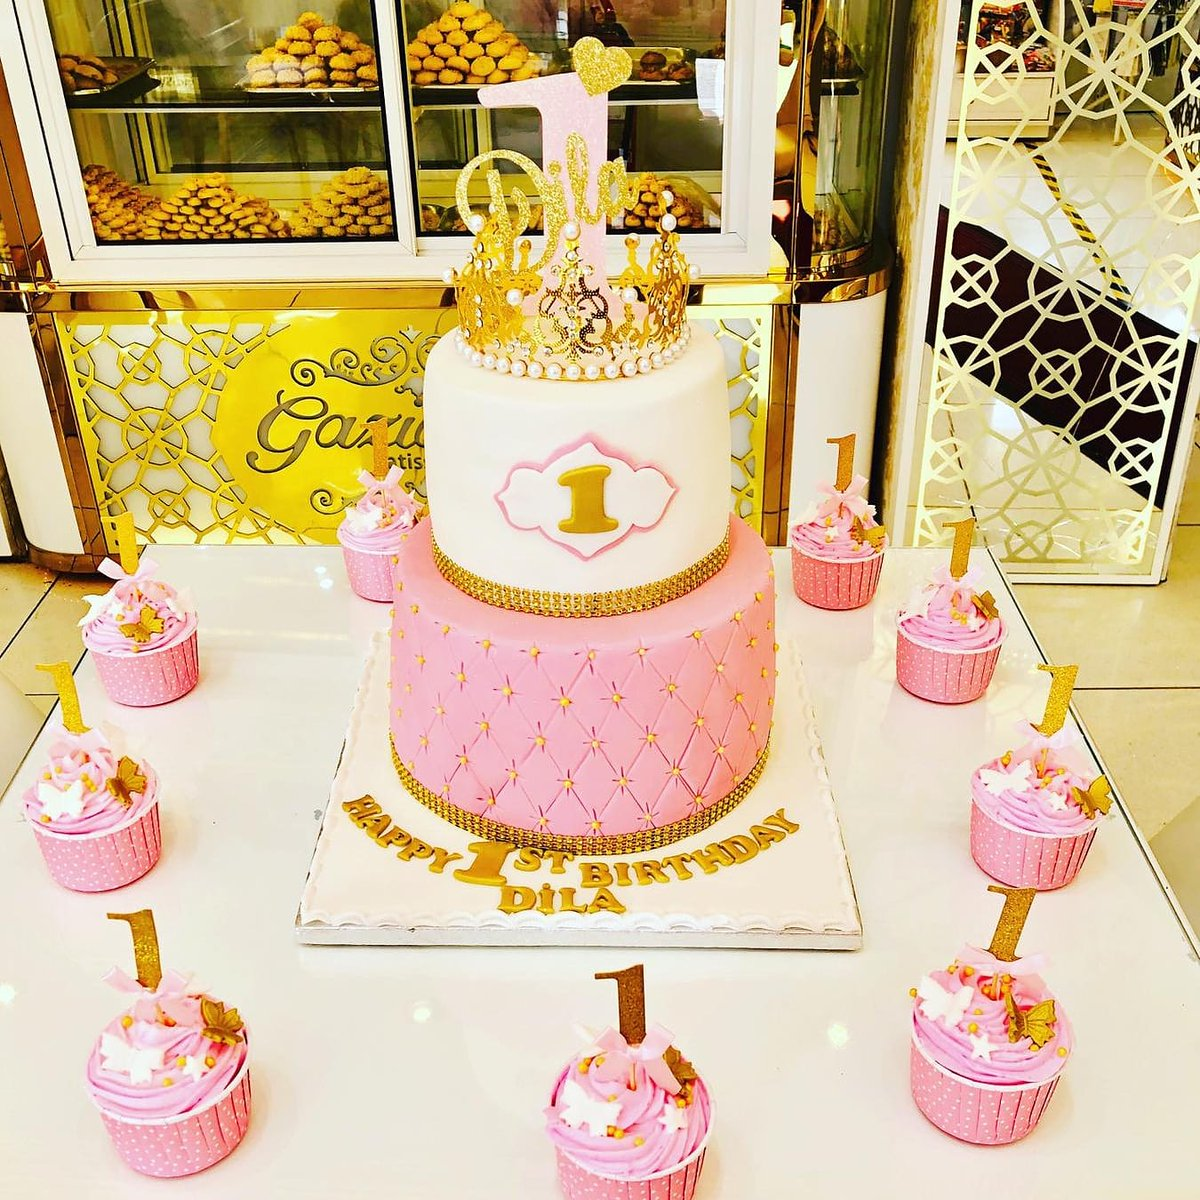 Thank you to @GaziantepEN3 for my amazing beautiful delicious perfect first birthday cake. It was awesome #firstbirthday #firstbirthdayparty #birthdaycake #princesscakepic.twitter.com/39ruropZEY